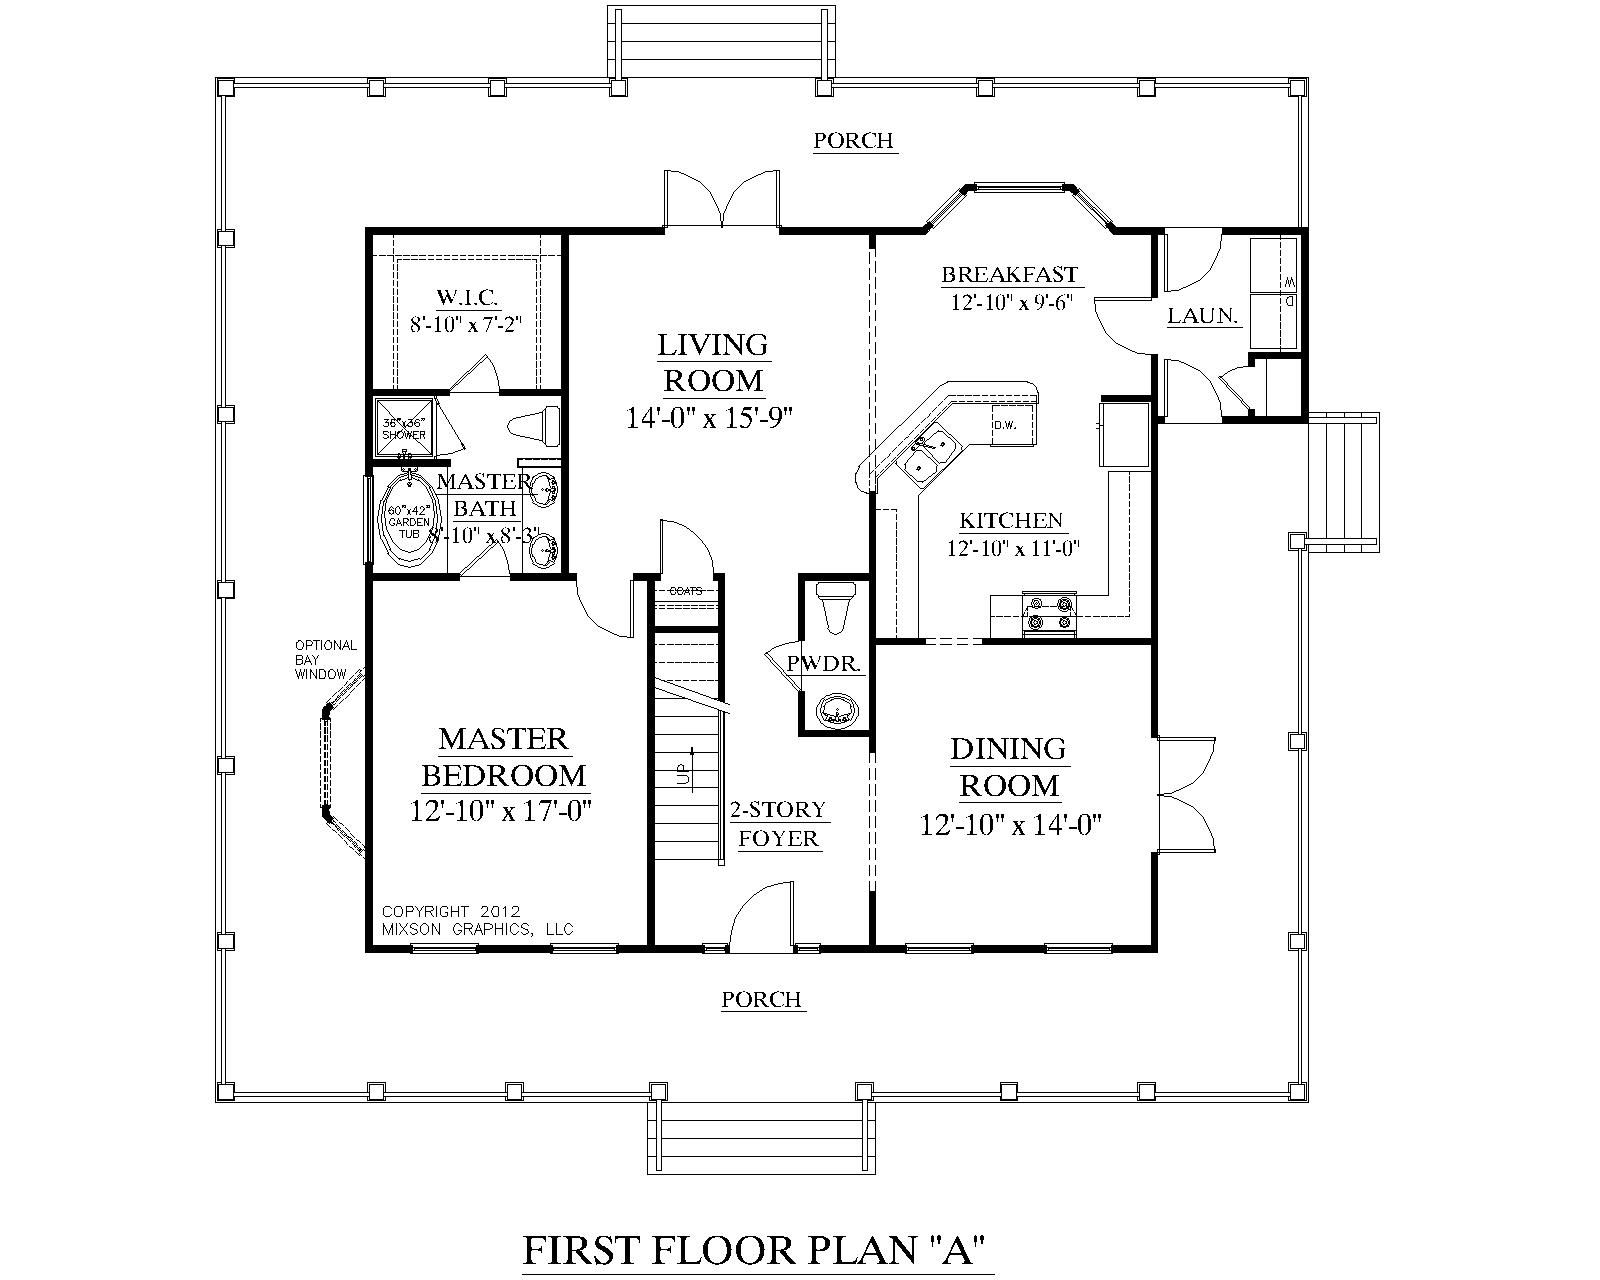 Small One Bedroom House Plans Traditional 1 1 2 Story